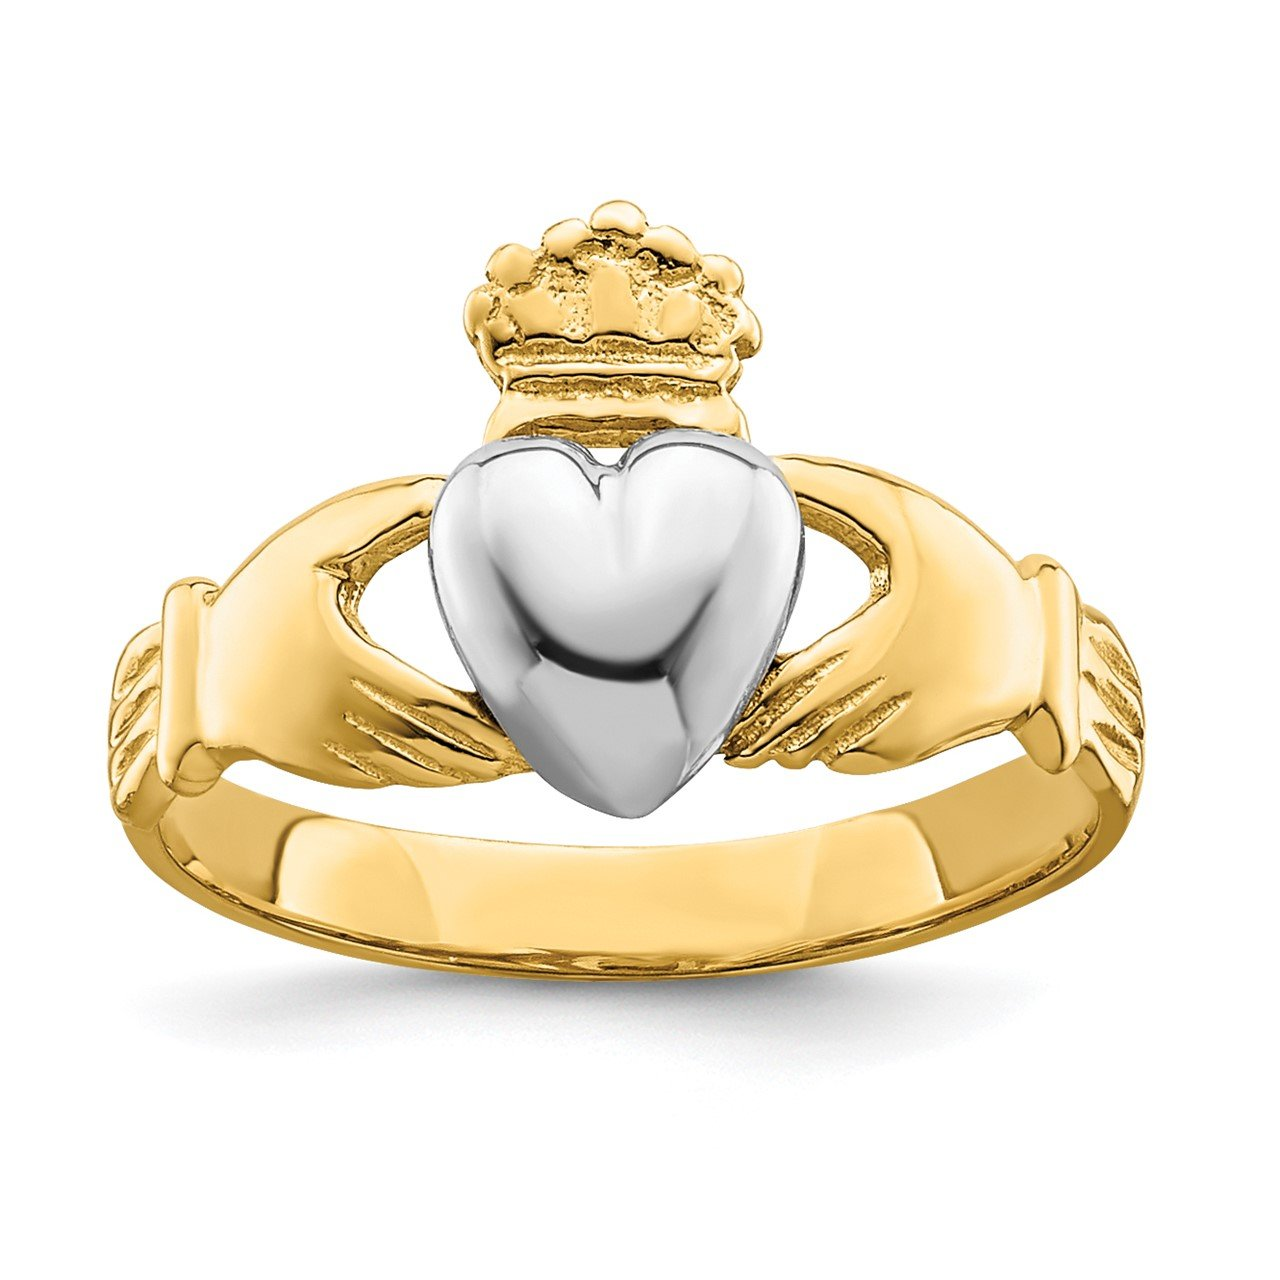 14k TT Yellow and White Gold Baby Claddagh Ring (Development)